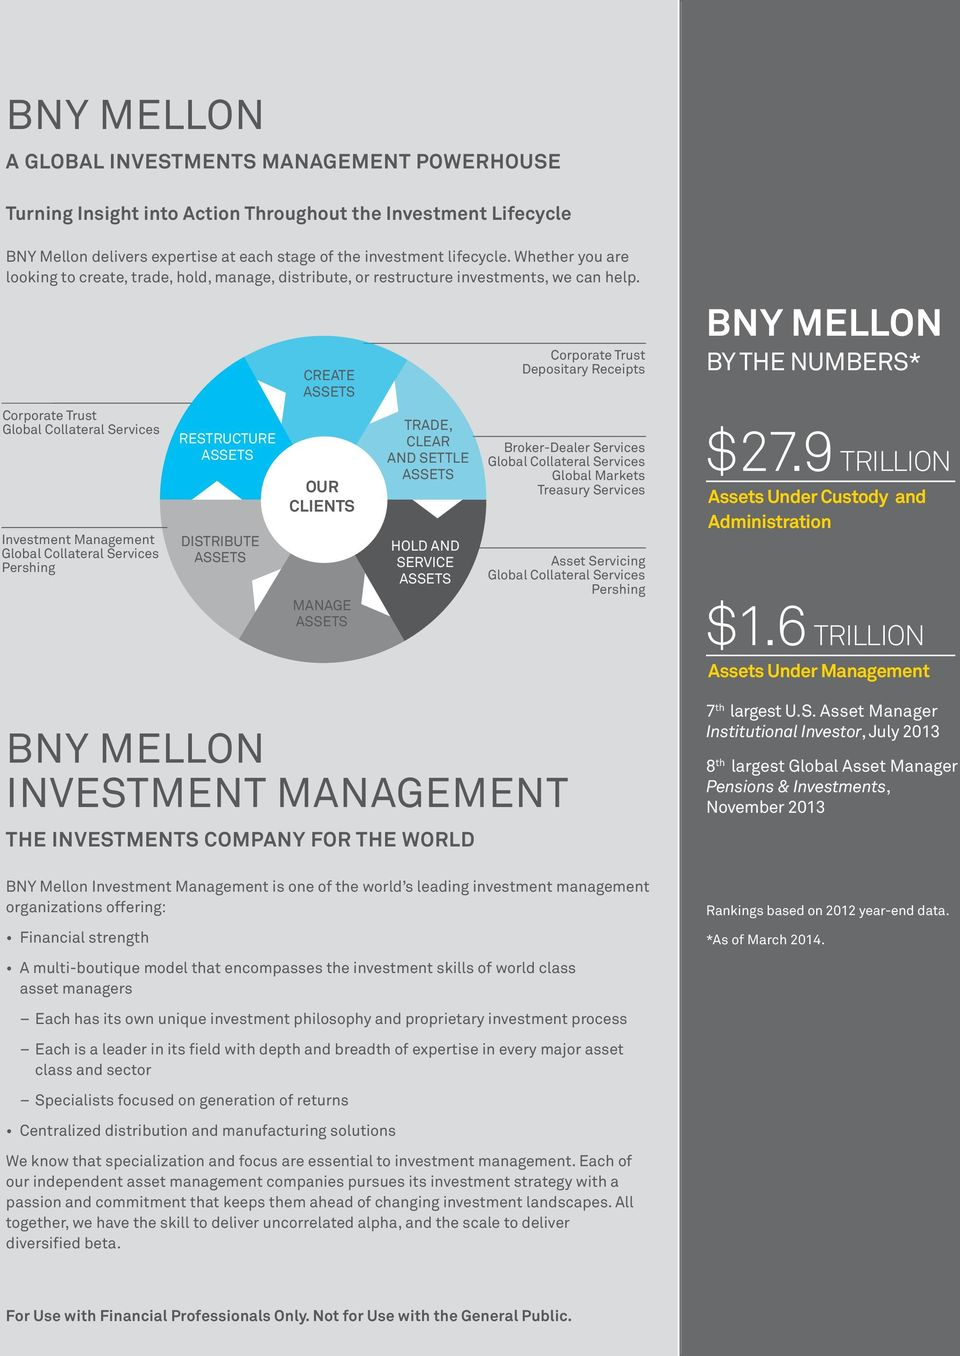 Corporate Trust Global Collateral Services Investment Management Global Collateral Services Pershing BNY Mellon Investment Management THE INVeSTMENTS COMPANY FOR THE WORLD BNY Mellon Investment